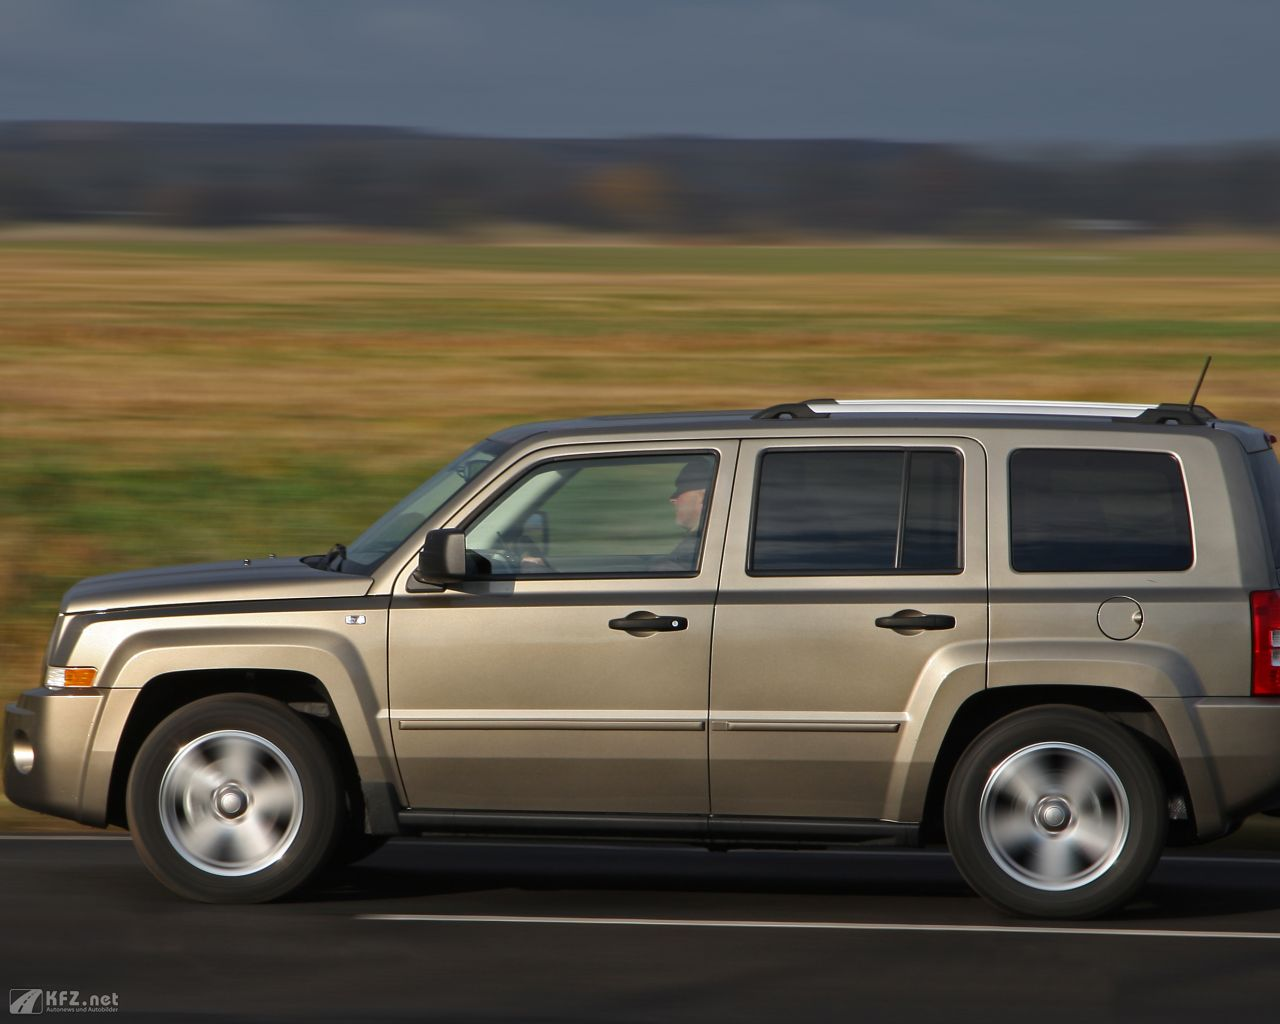 jeep-patriot-1280x1024-12